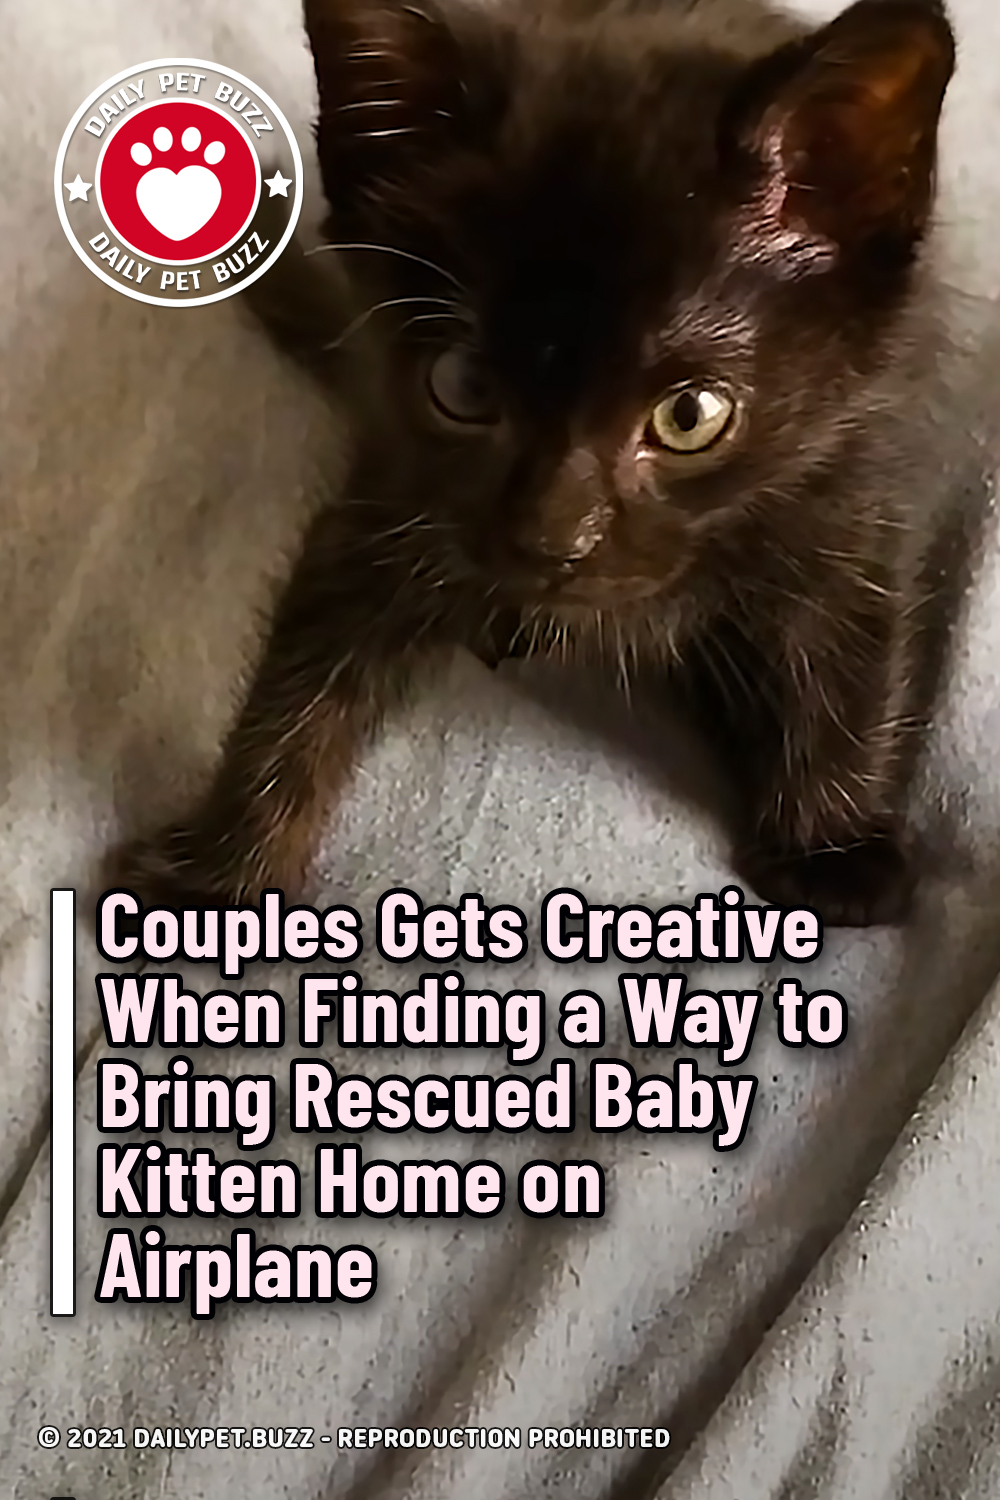 Couple Gets Creative When Finding a Way to Bring Rescued Baby Kitten Home on Airplane